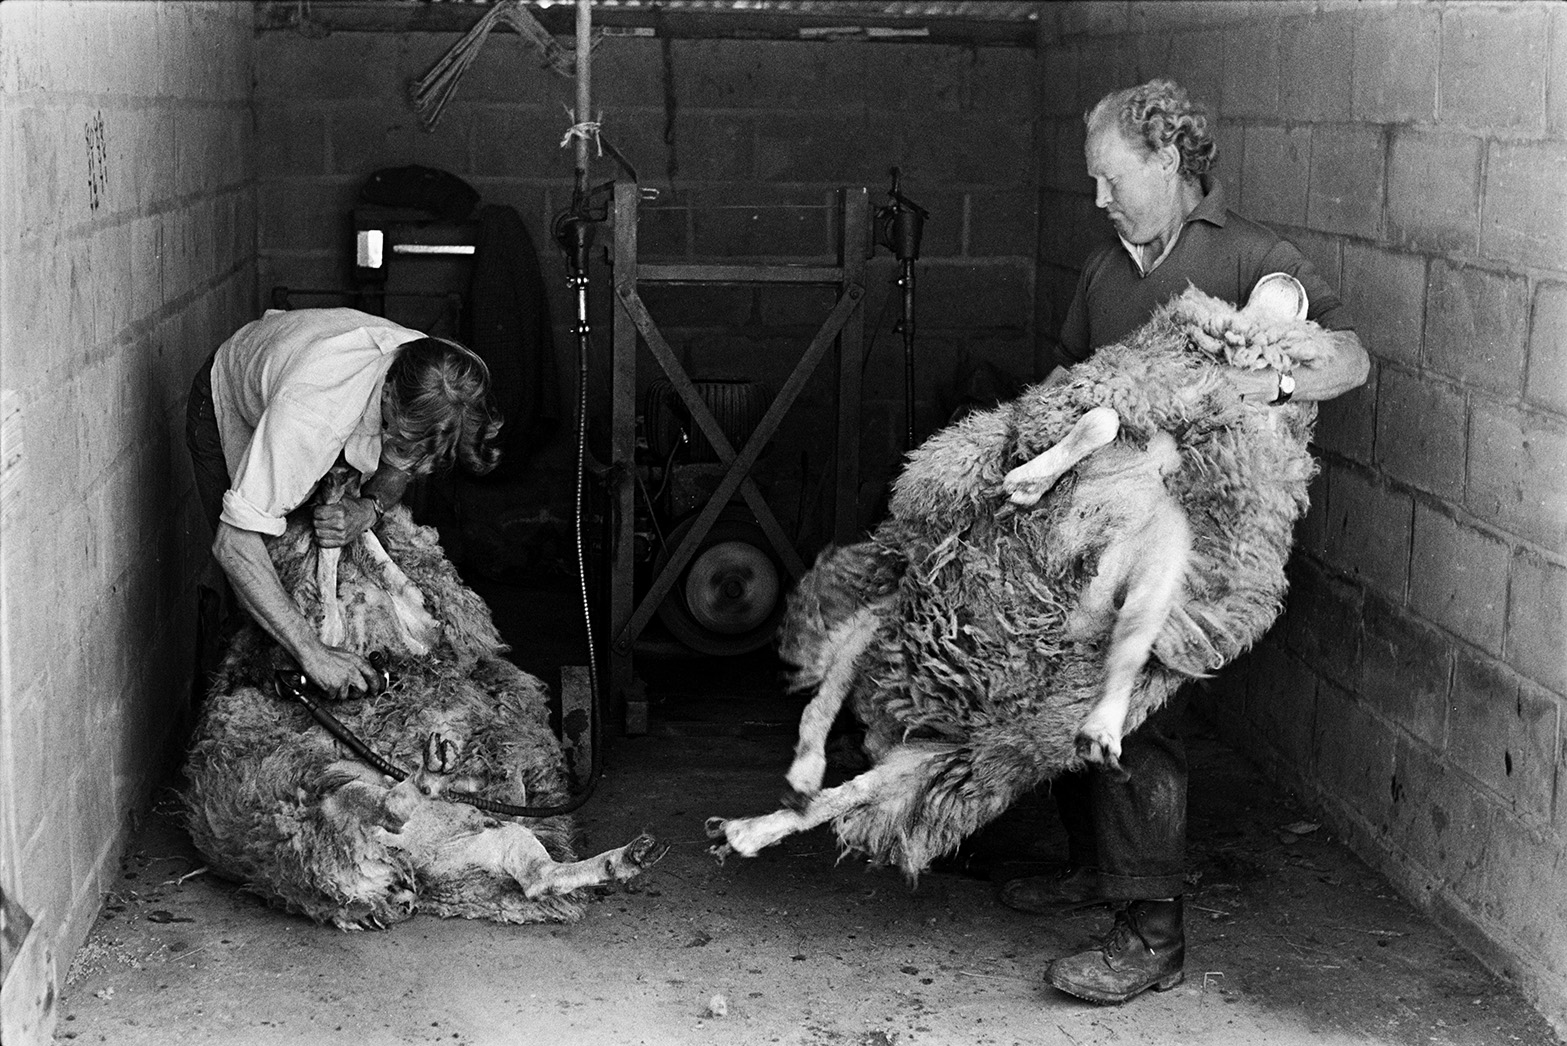 Ivor Bourne and another man shearing sheep, using a shearing machine, in a barn at Mill Road Farm, Beaford. The farm was also known as Jeffrys.